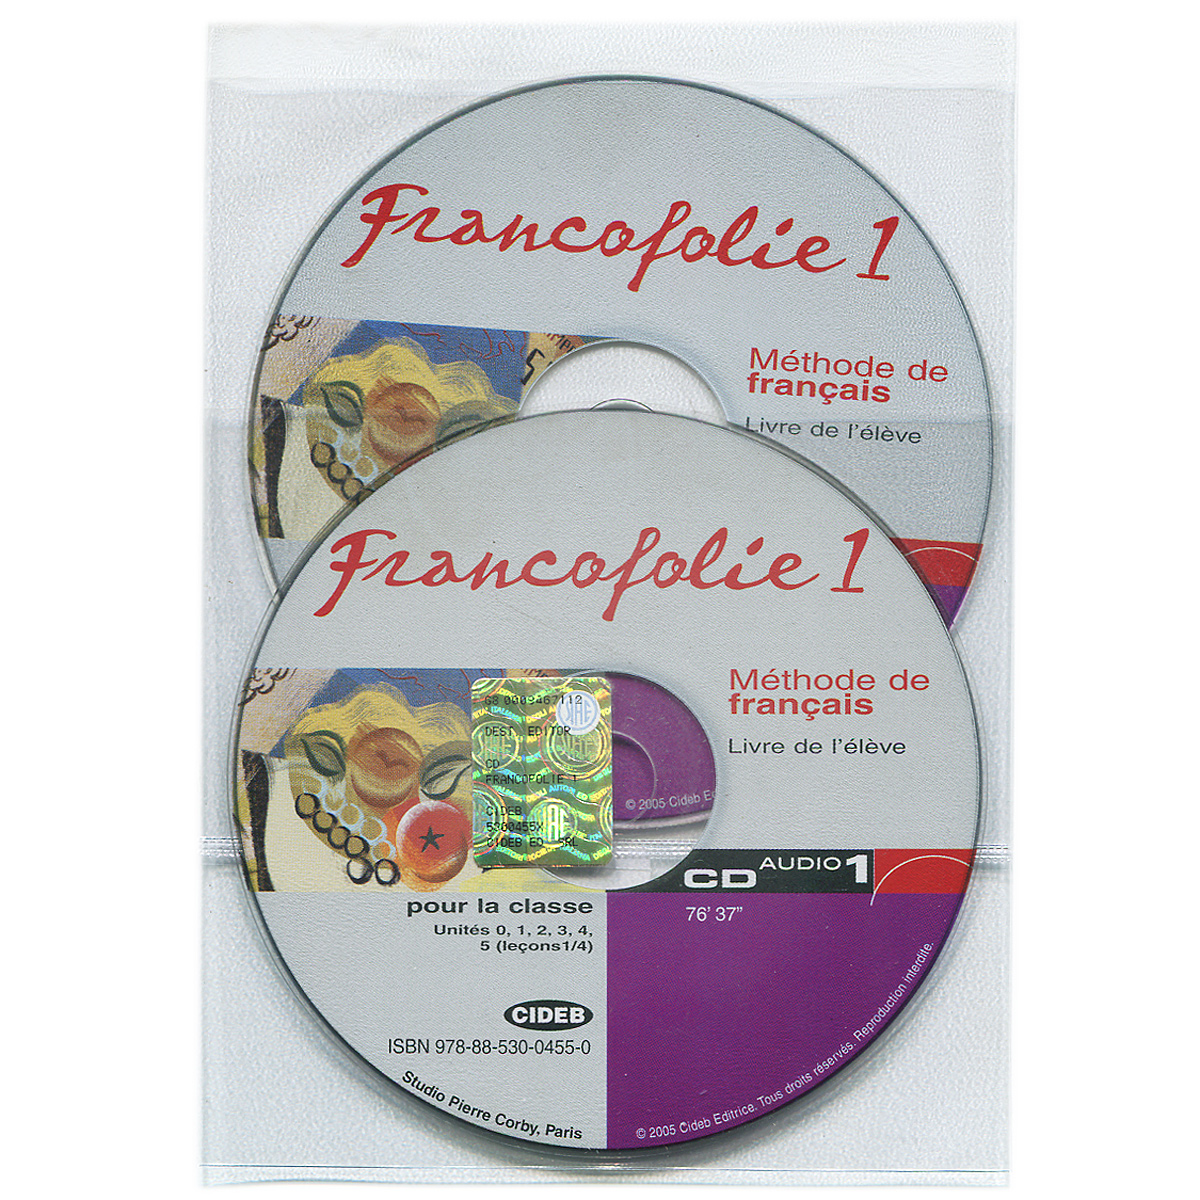 Francofolie 1: Methode de Francais (аудиокурс на 2 CD) zenith methode de francais 3 b1